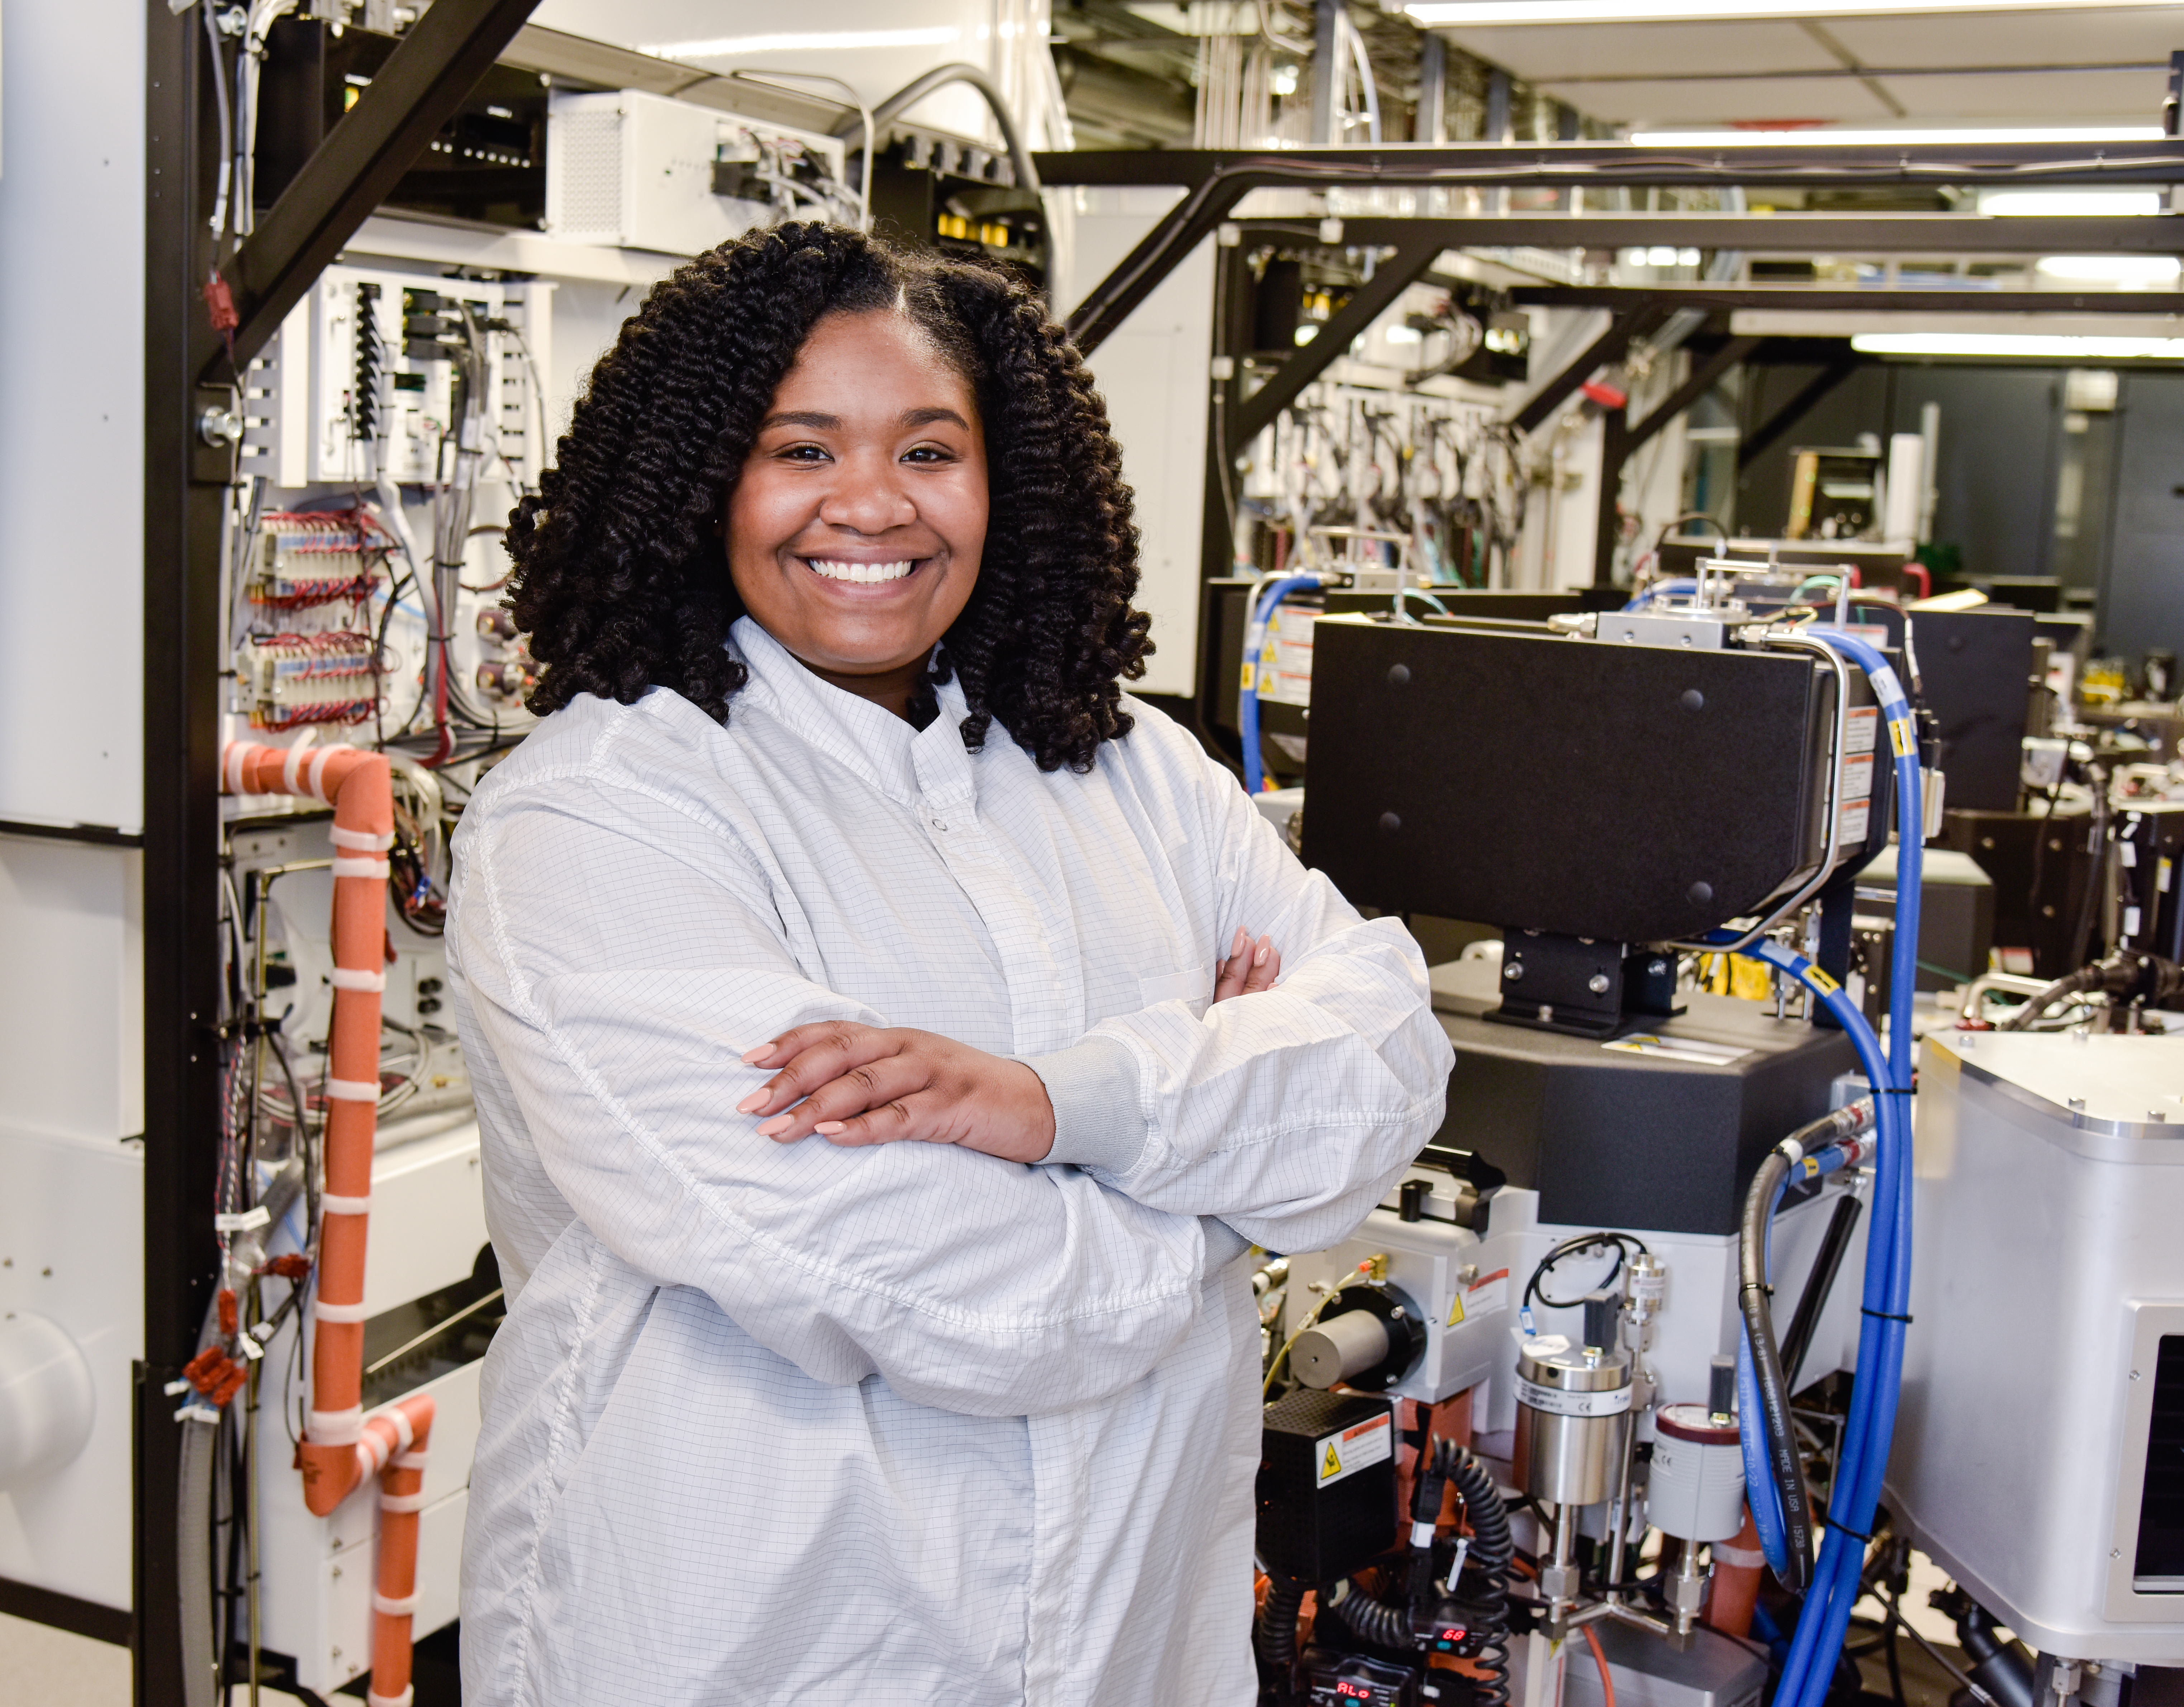 Young African American woman wearing lab attire stands smiling in lab